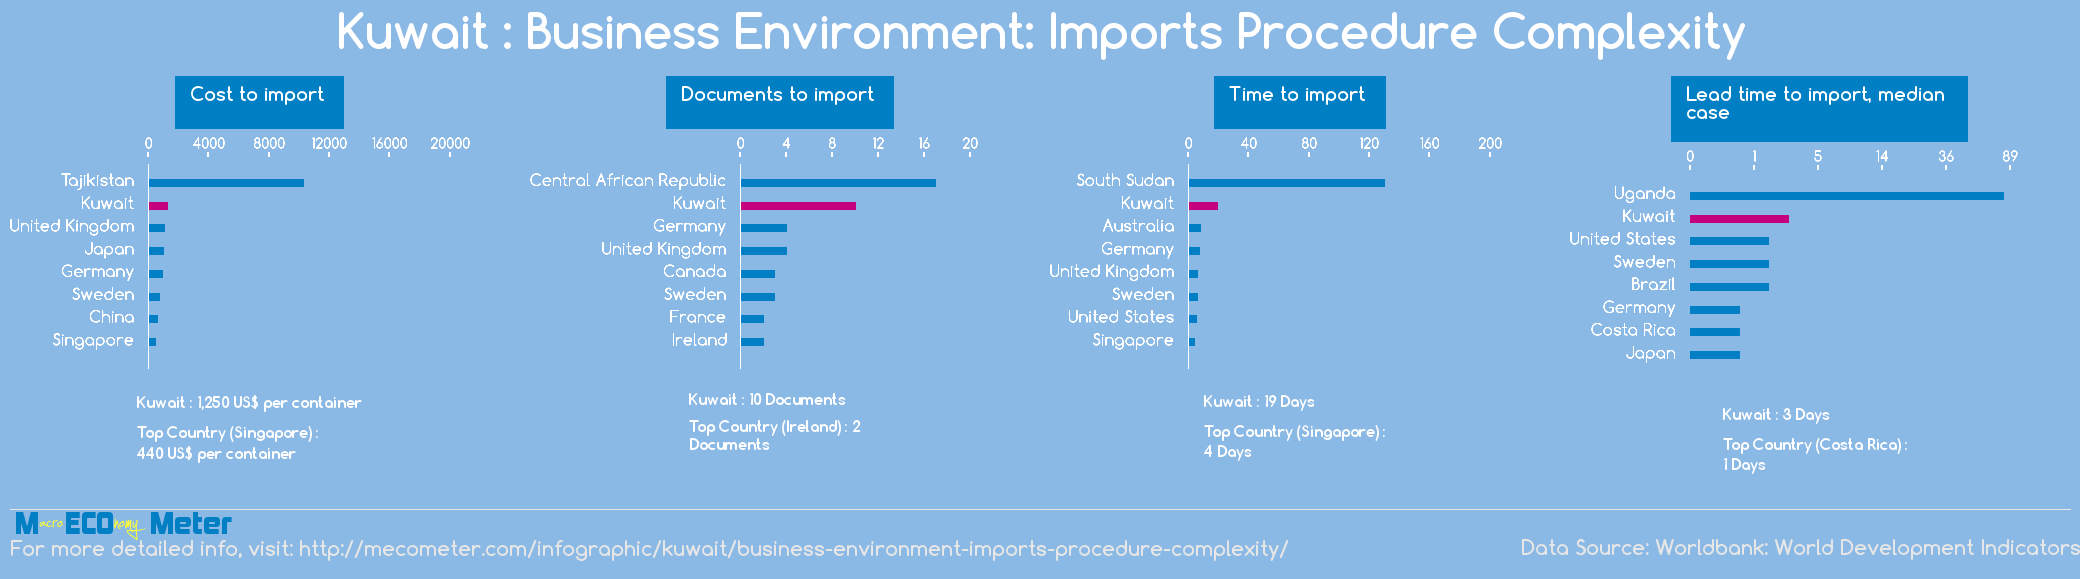 Kuwait : Business Environment: Imports Procedure Complexity